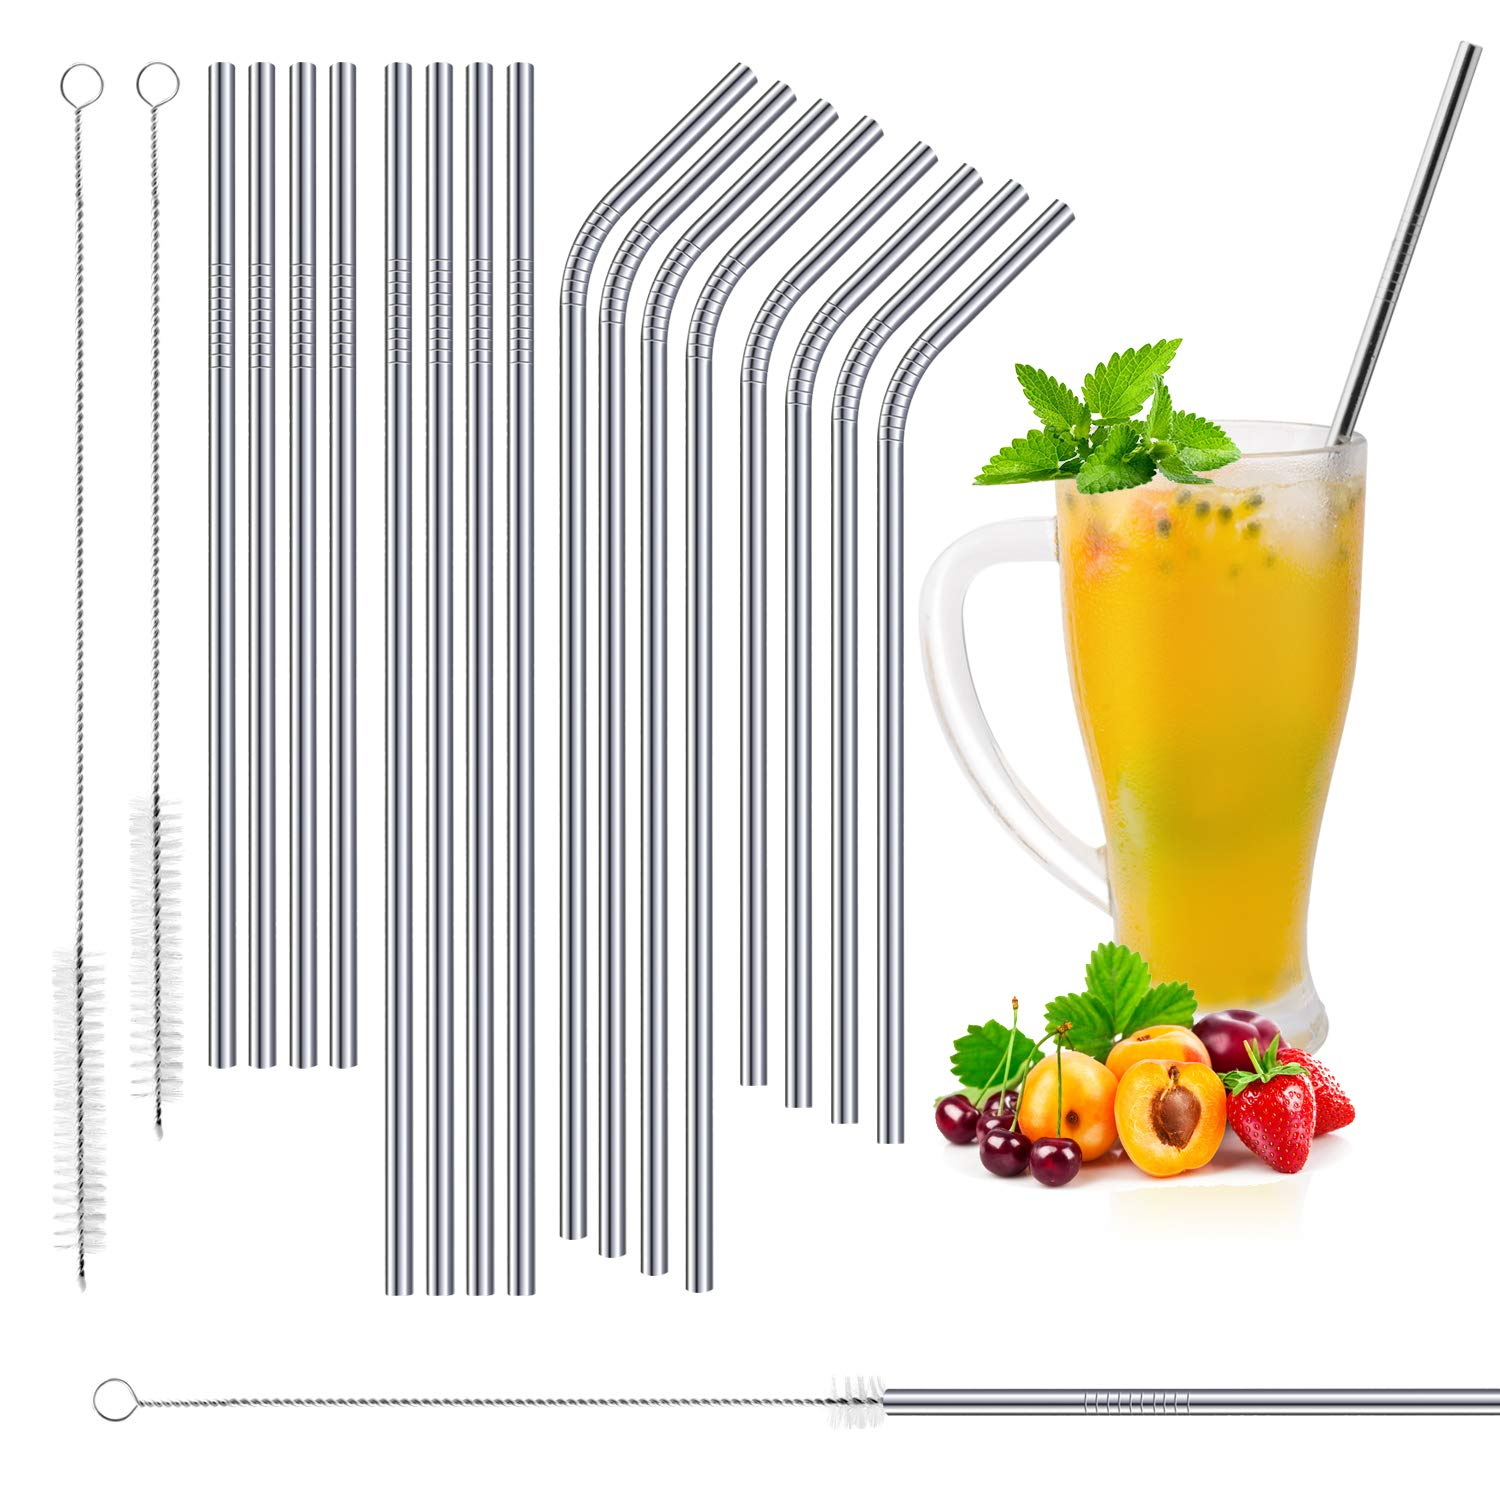 Liffree Set of 16 Stainless Steel drinking Straws Eco-friendly Replacement Straws for 30oz 20oz Yeti Rambler, RTIC, Ozark, Trail Tumblers, Metal Drinking Reusable Straws with 2 Cleaning Brushes